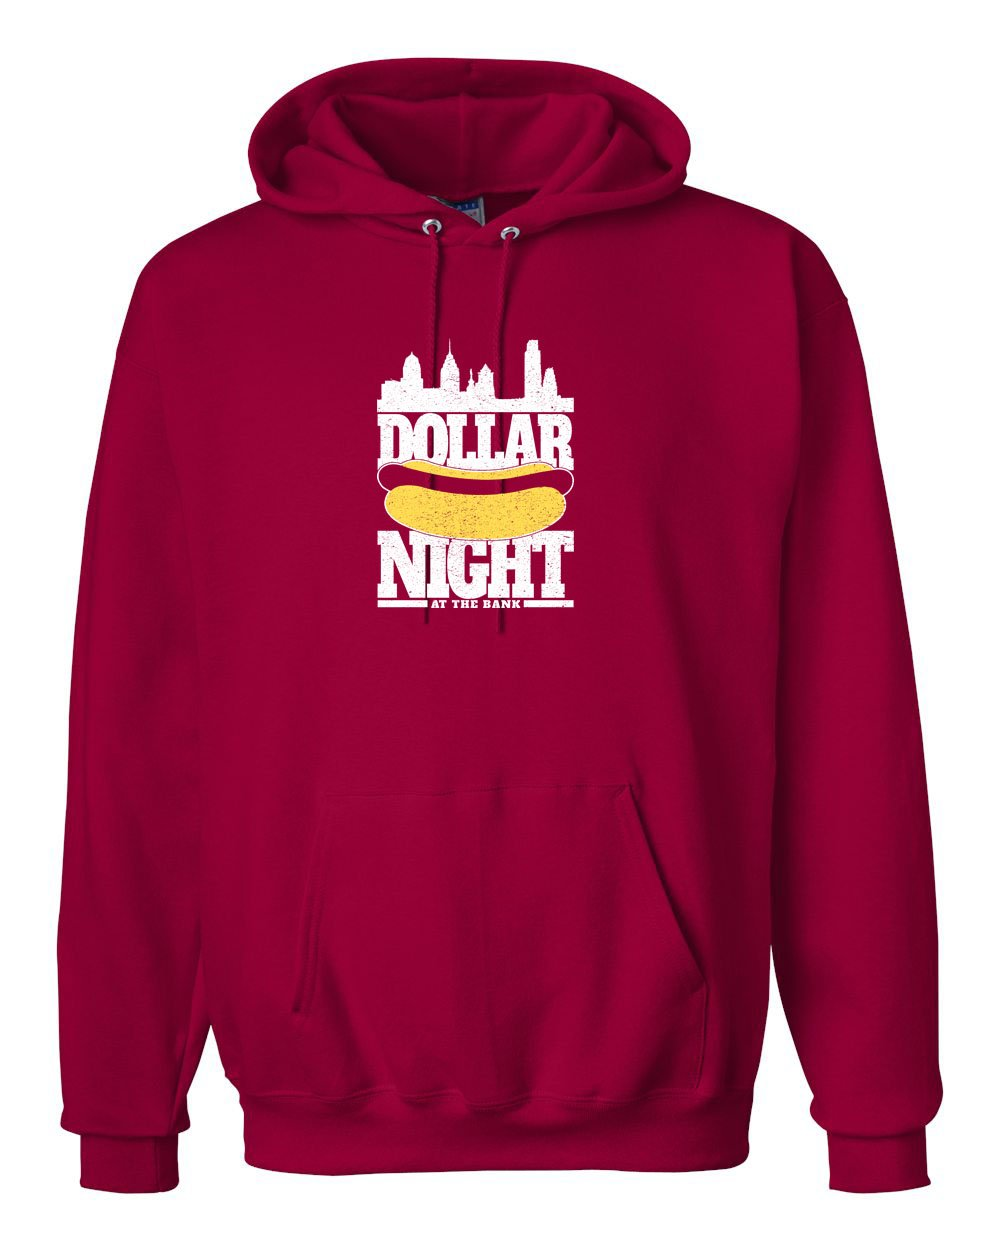 Dollar Dog Night Hoodie